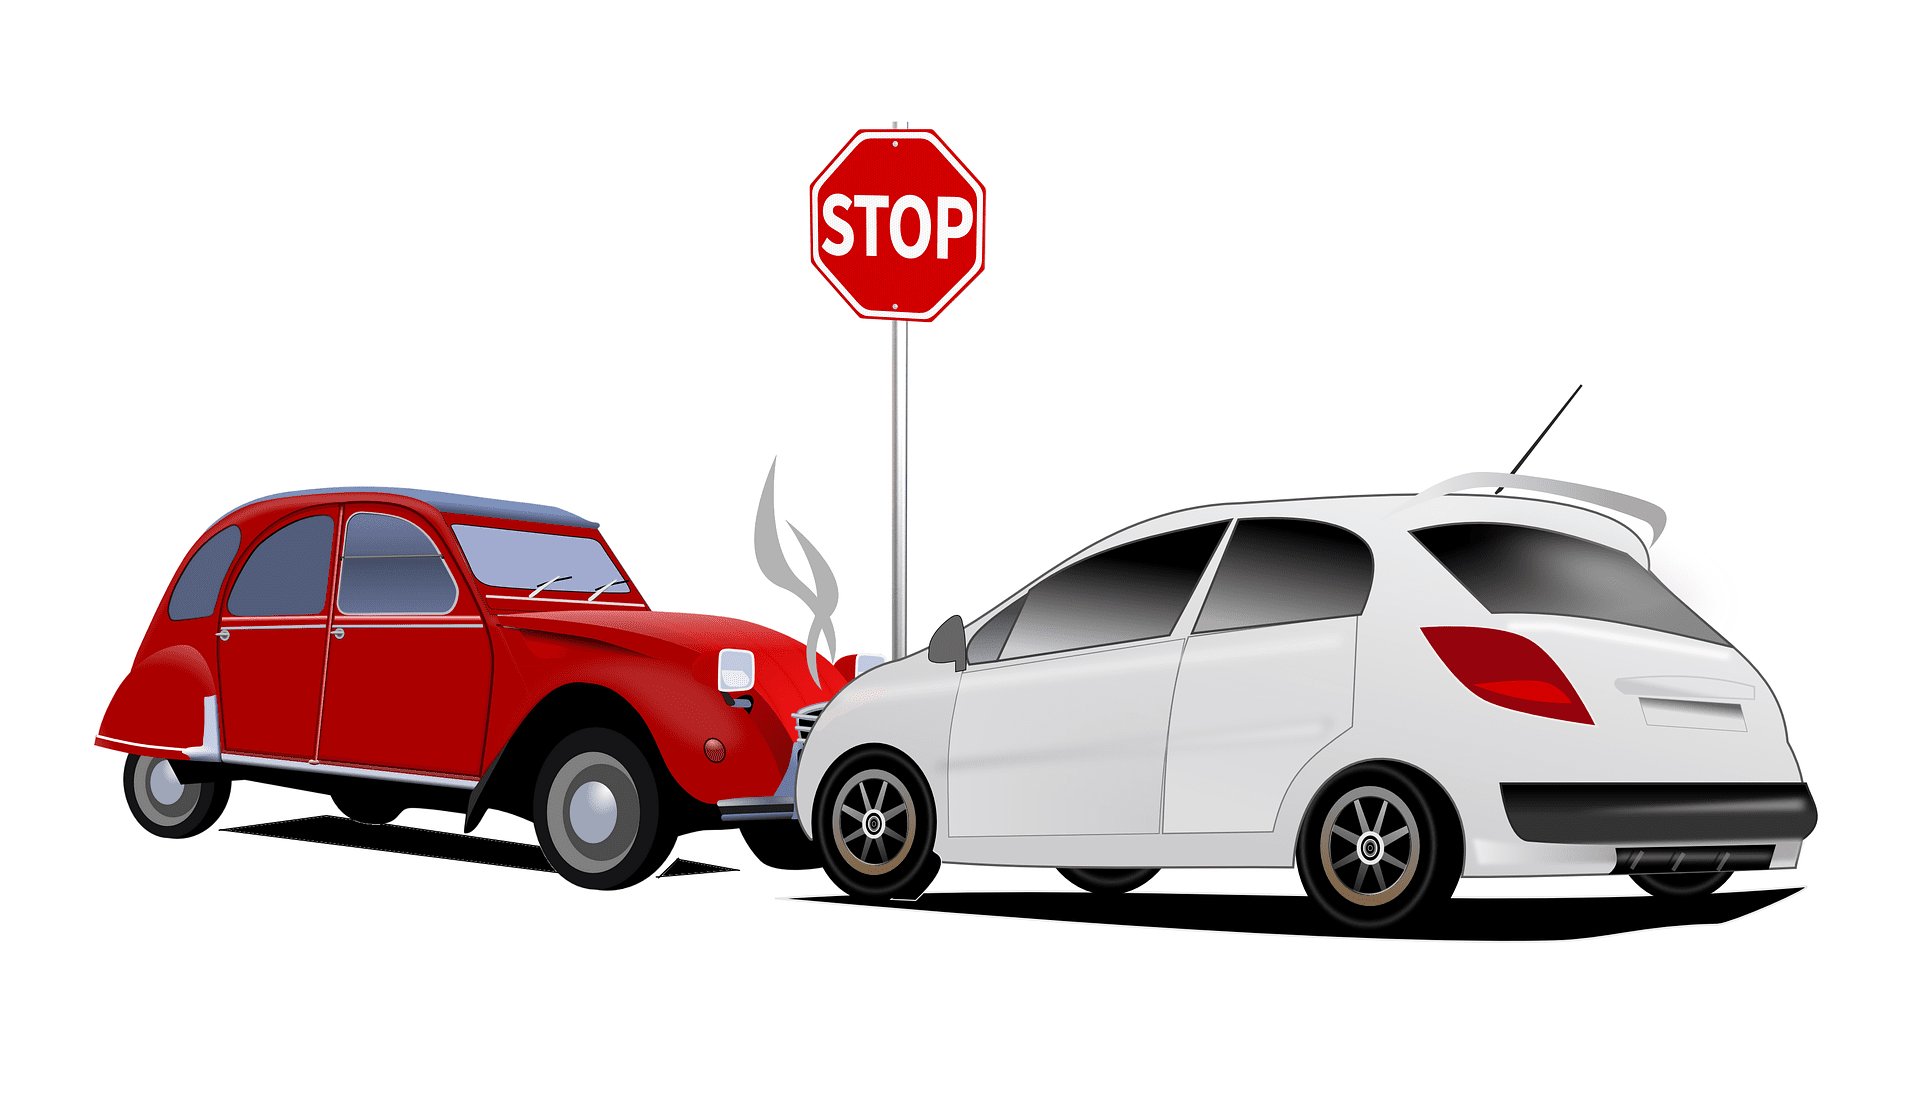 Car Accident? We can help.